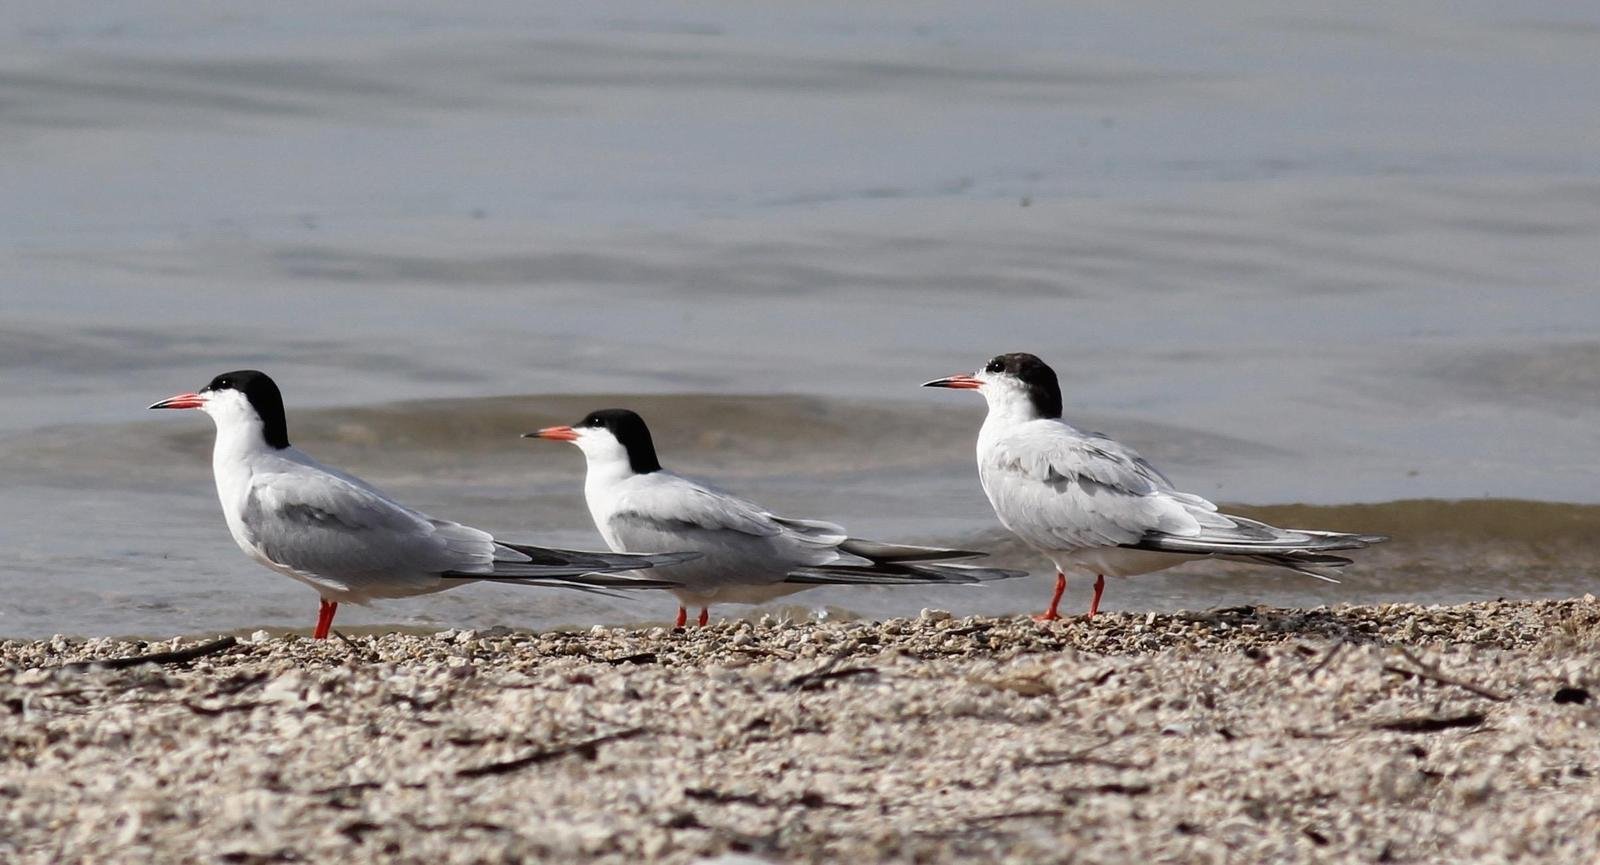 Forster's Tern Photo by Kathryn Keith